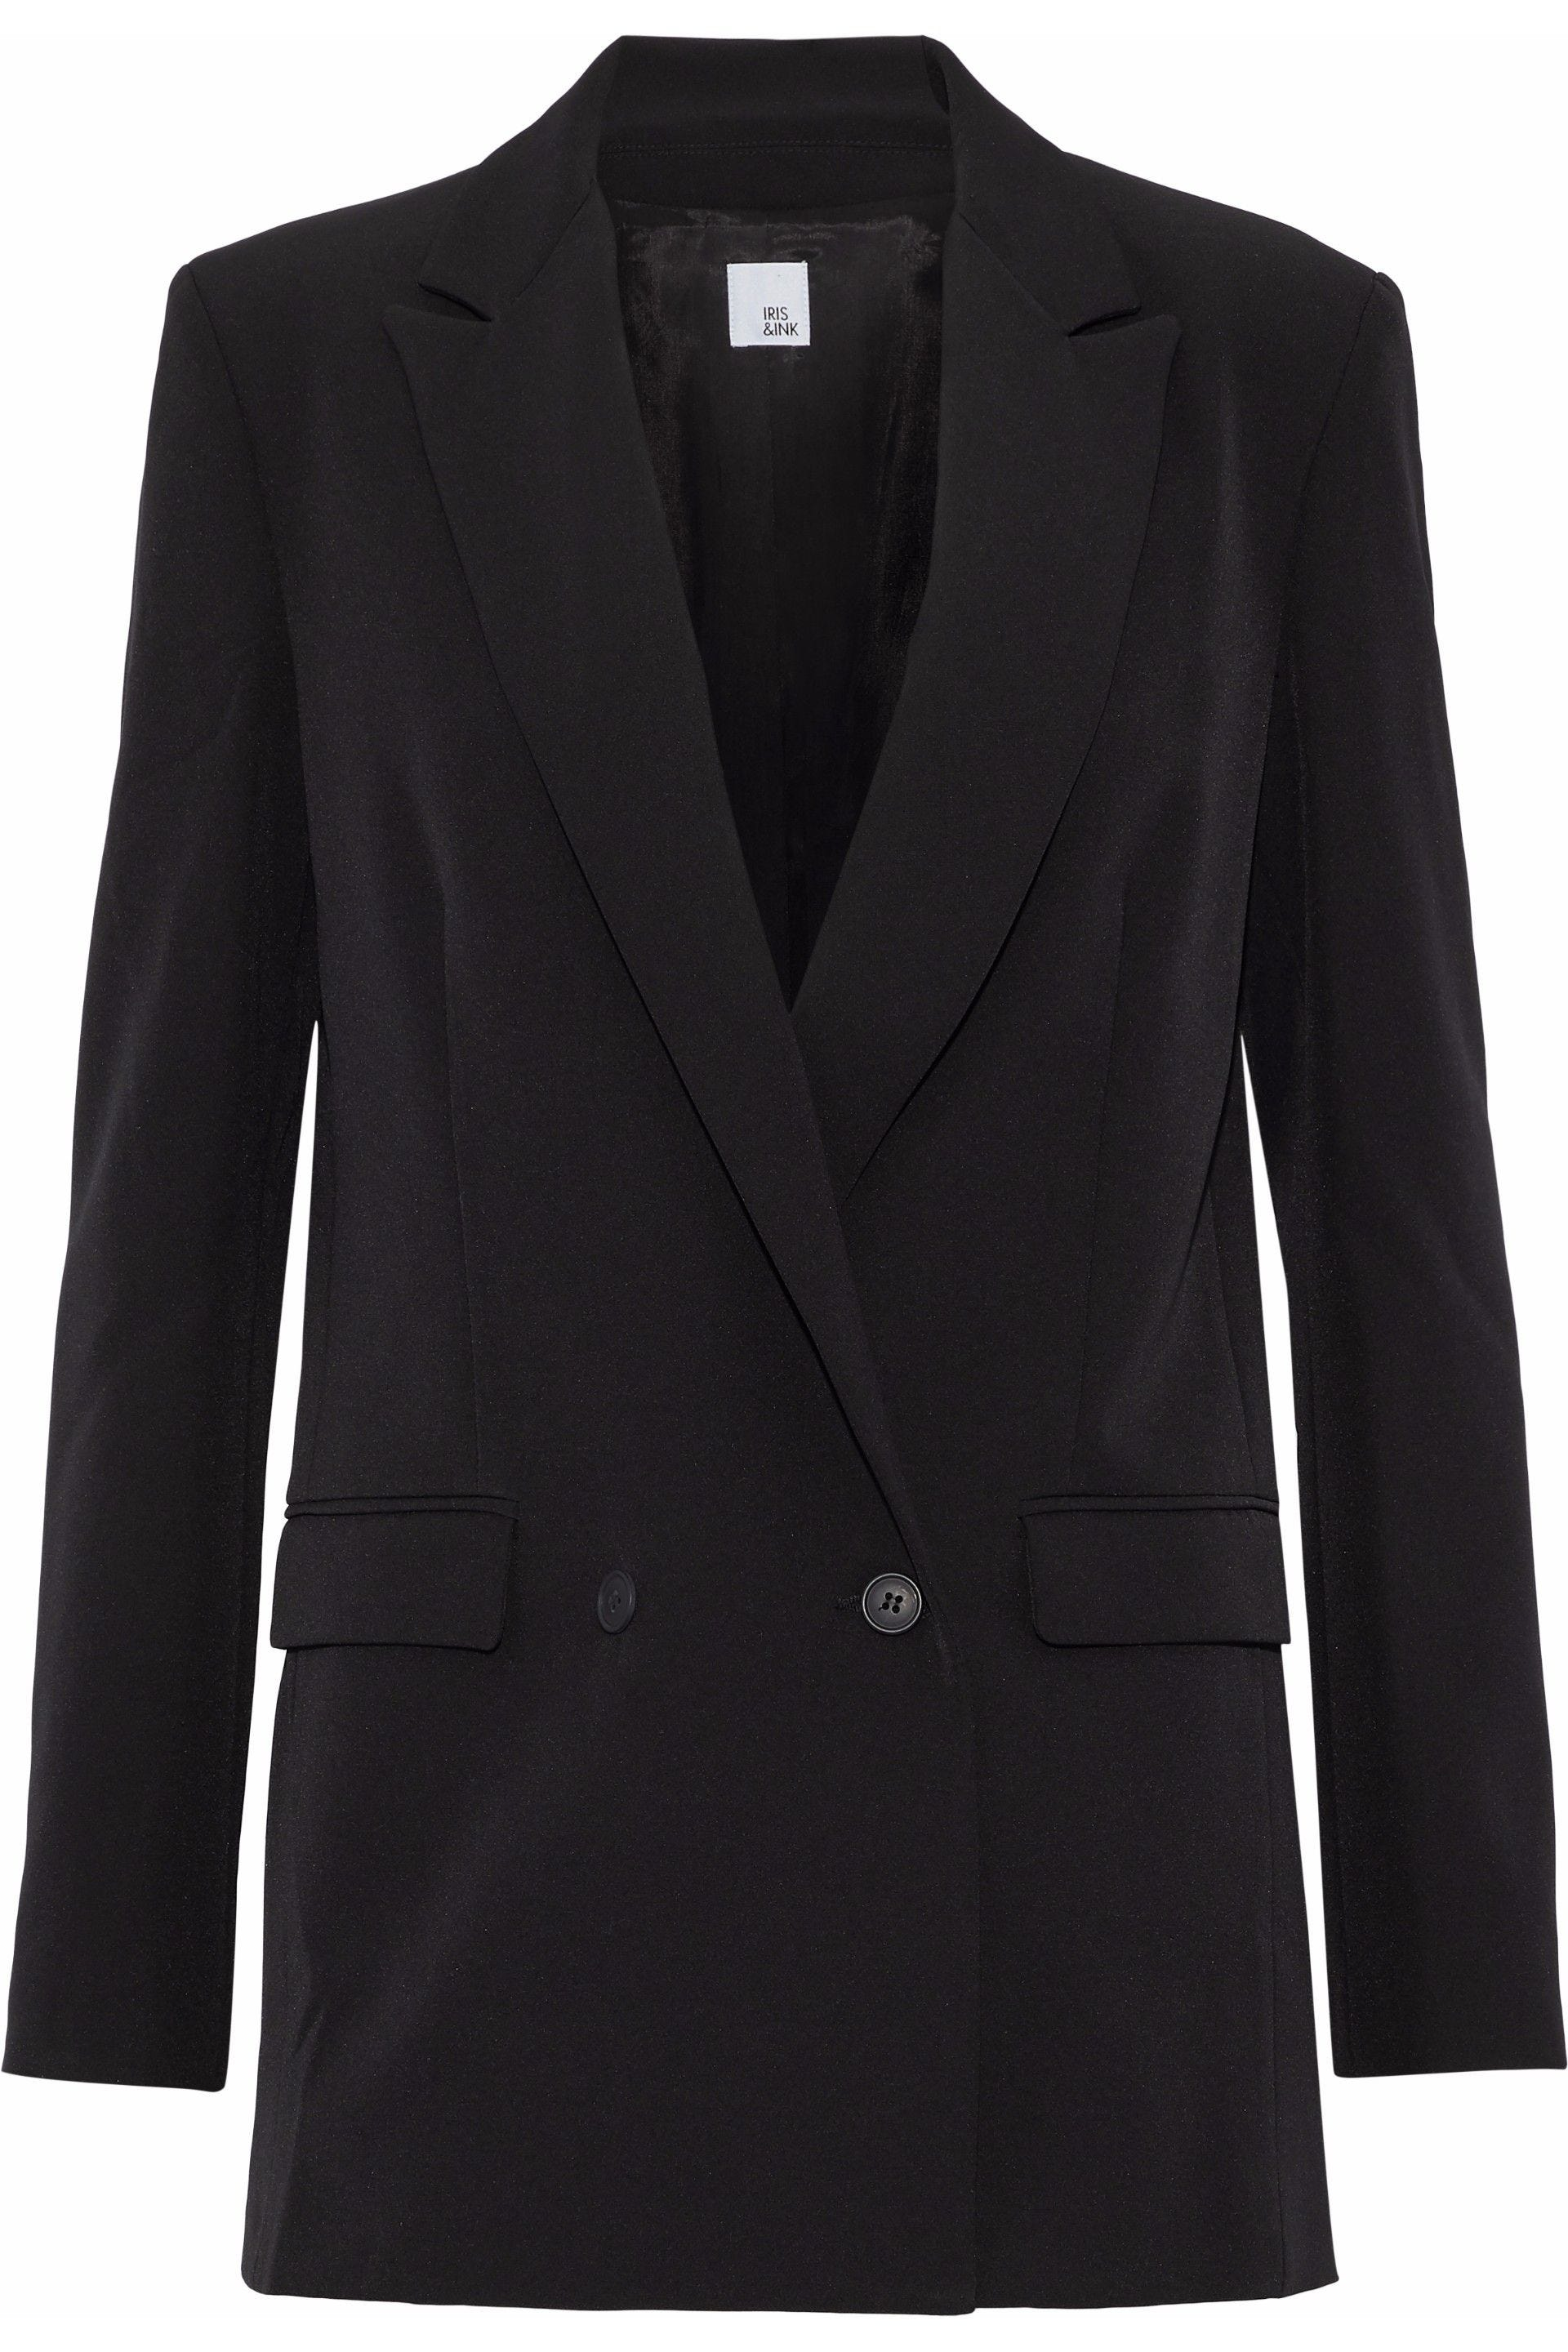 6b1d9b81e1 Double Breasted Blazers For Women Fall Trend